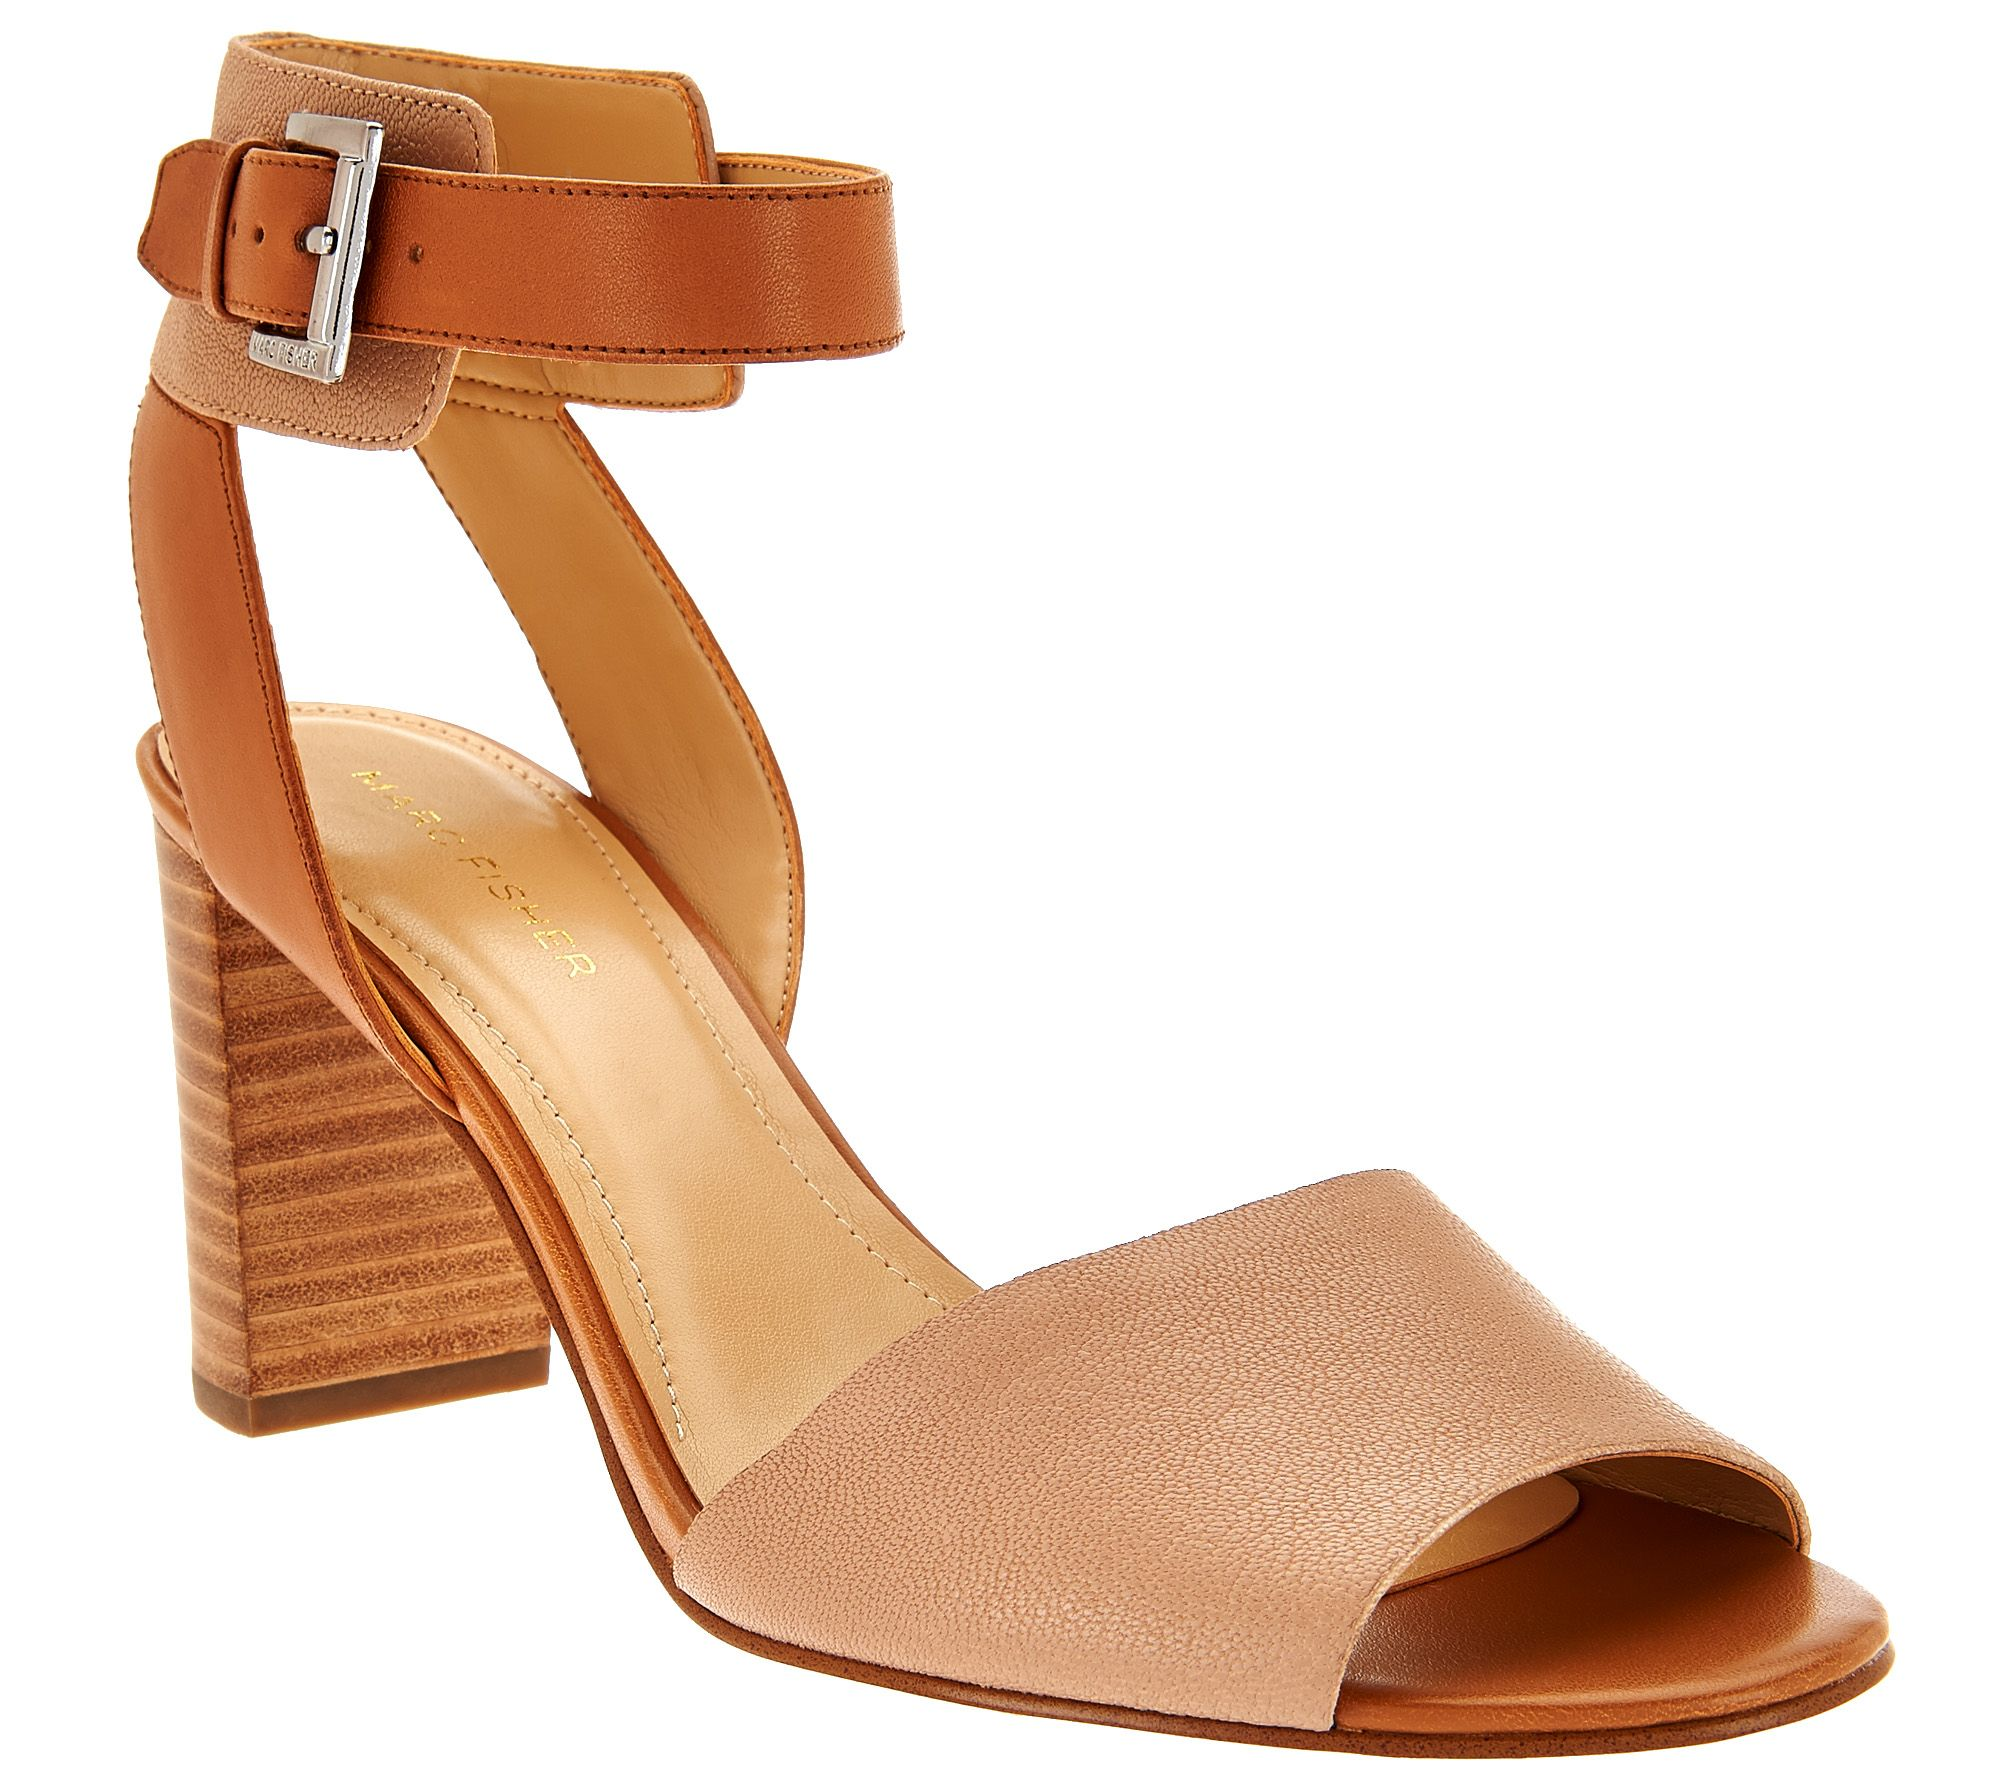 860d1bdb031 Marc Fisher Leather Ankle Strap Block Heel Sandals - Genette - Page 1 —  QVC.com